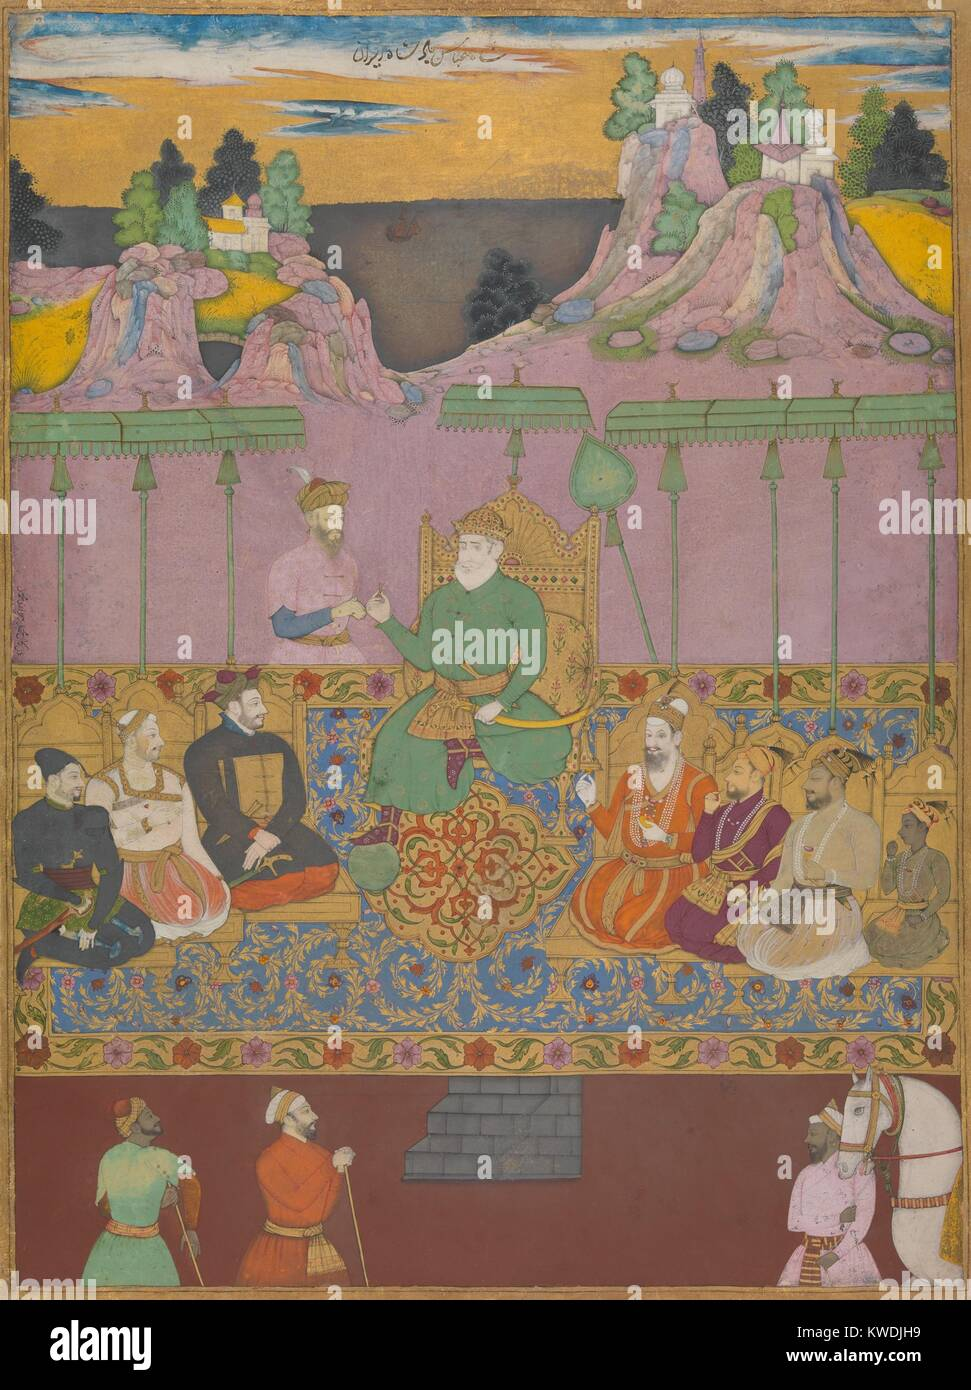 THE HOUSE OF BIJAPUR, by Chand Muhammad, 1670-80s, Indian painting, ink, watercolor on paper. Dynastic portrait - Stock Image